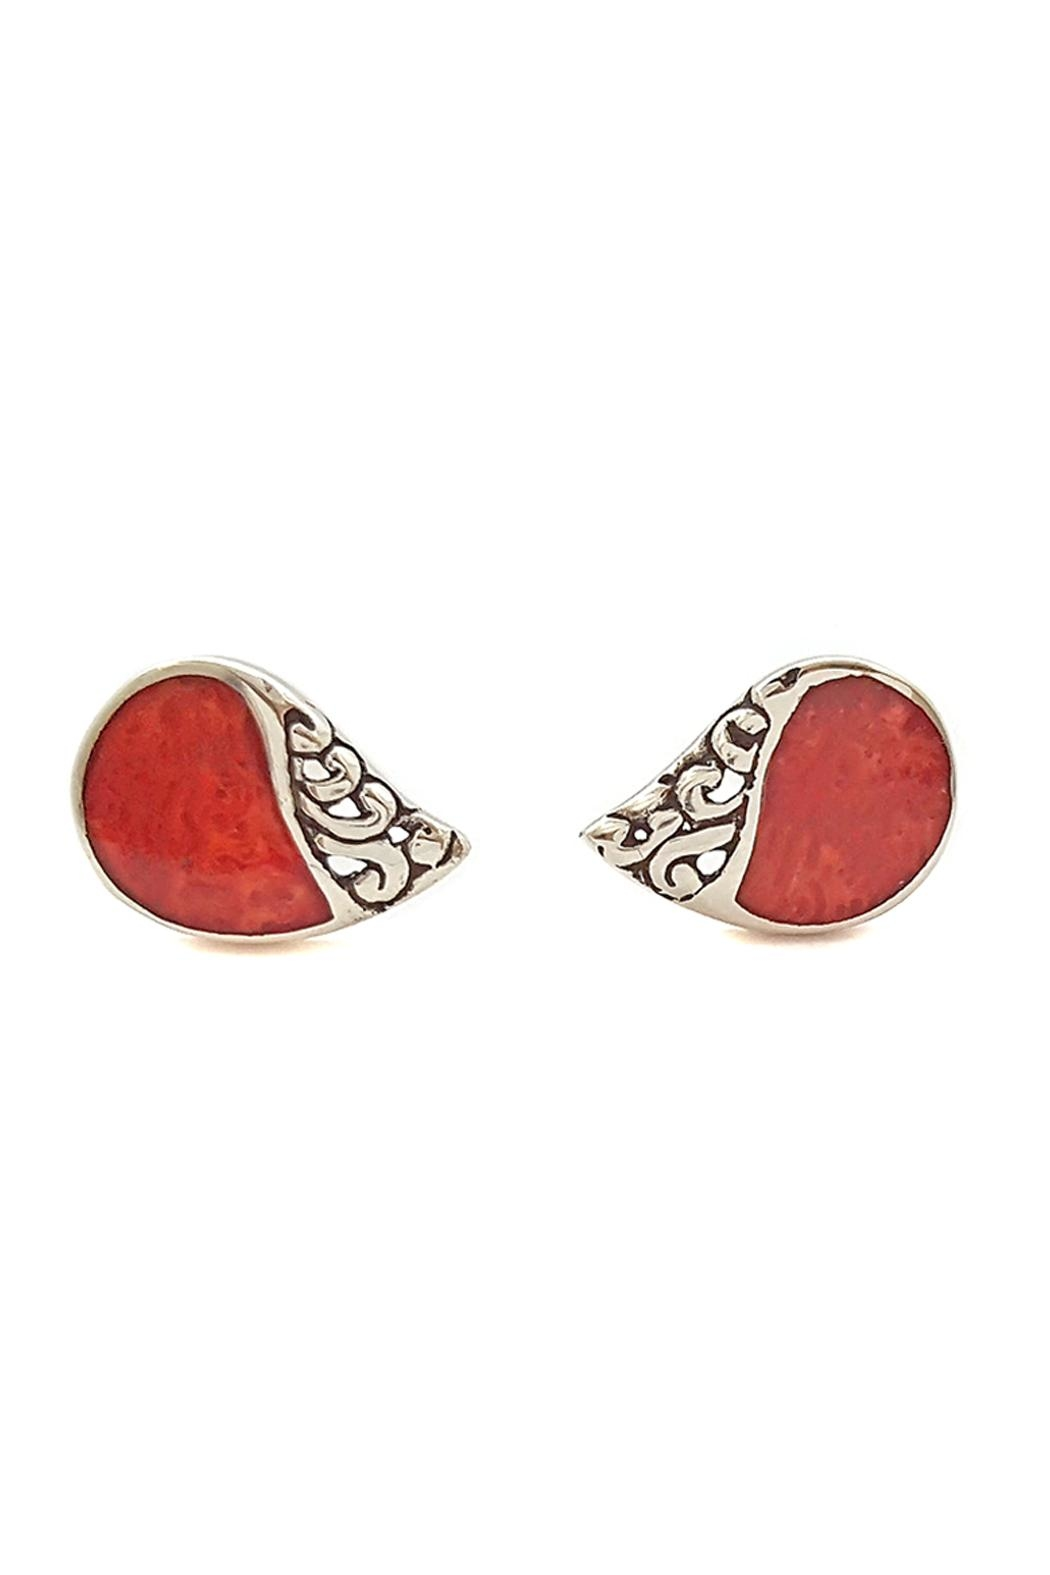 Oceania Maui Coral Stud Earrings - Main Image